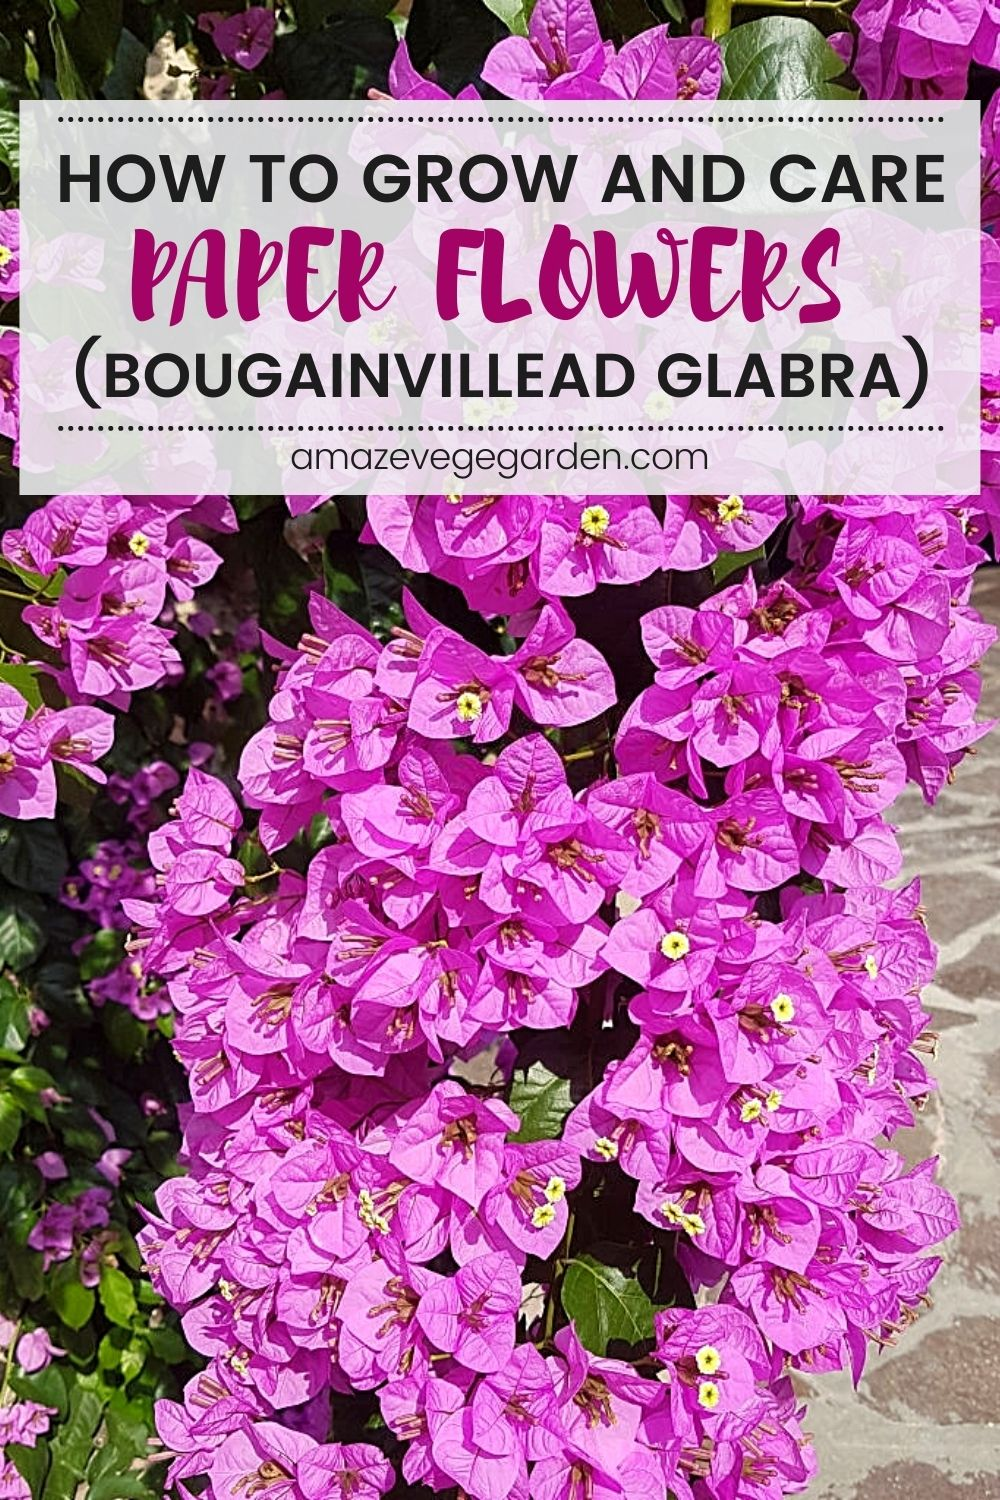 How To Grow and Take Care of Paper Flowers Bougainvillea Glabra